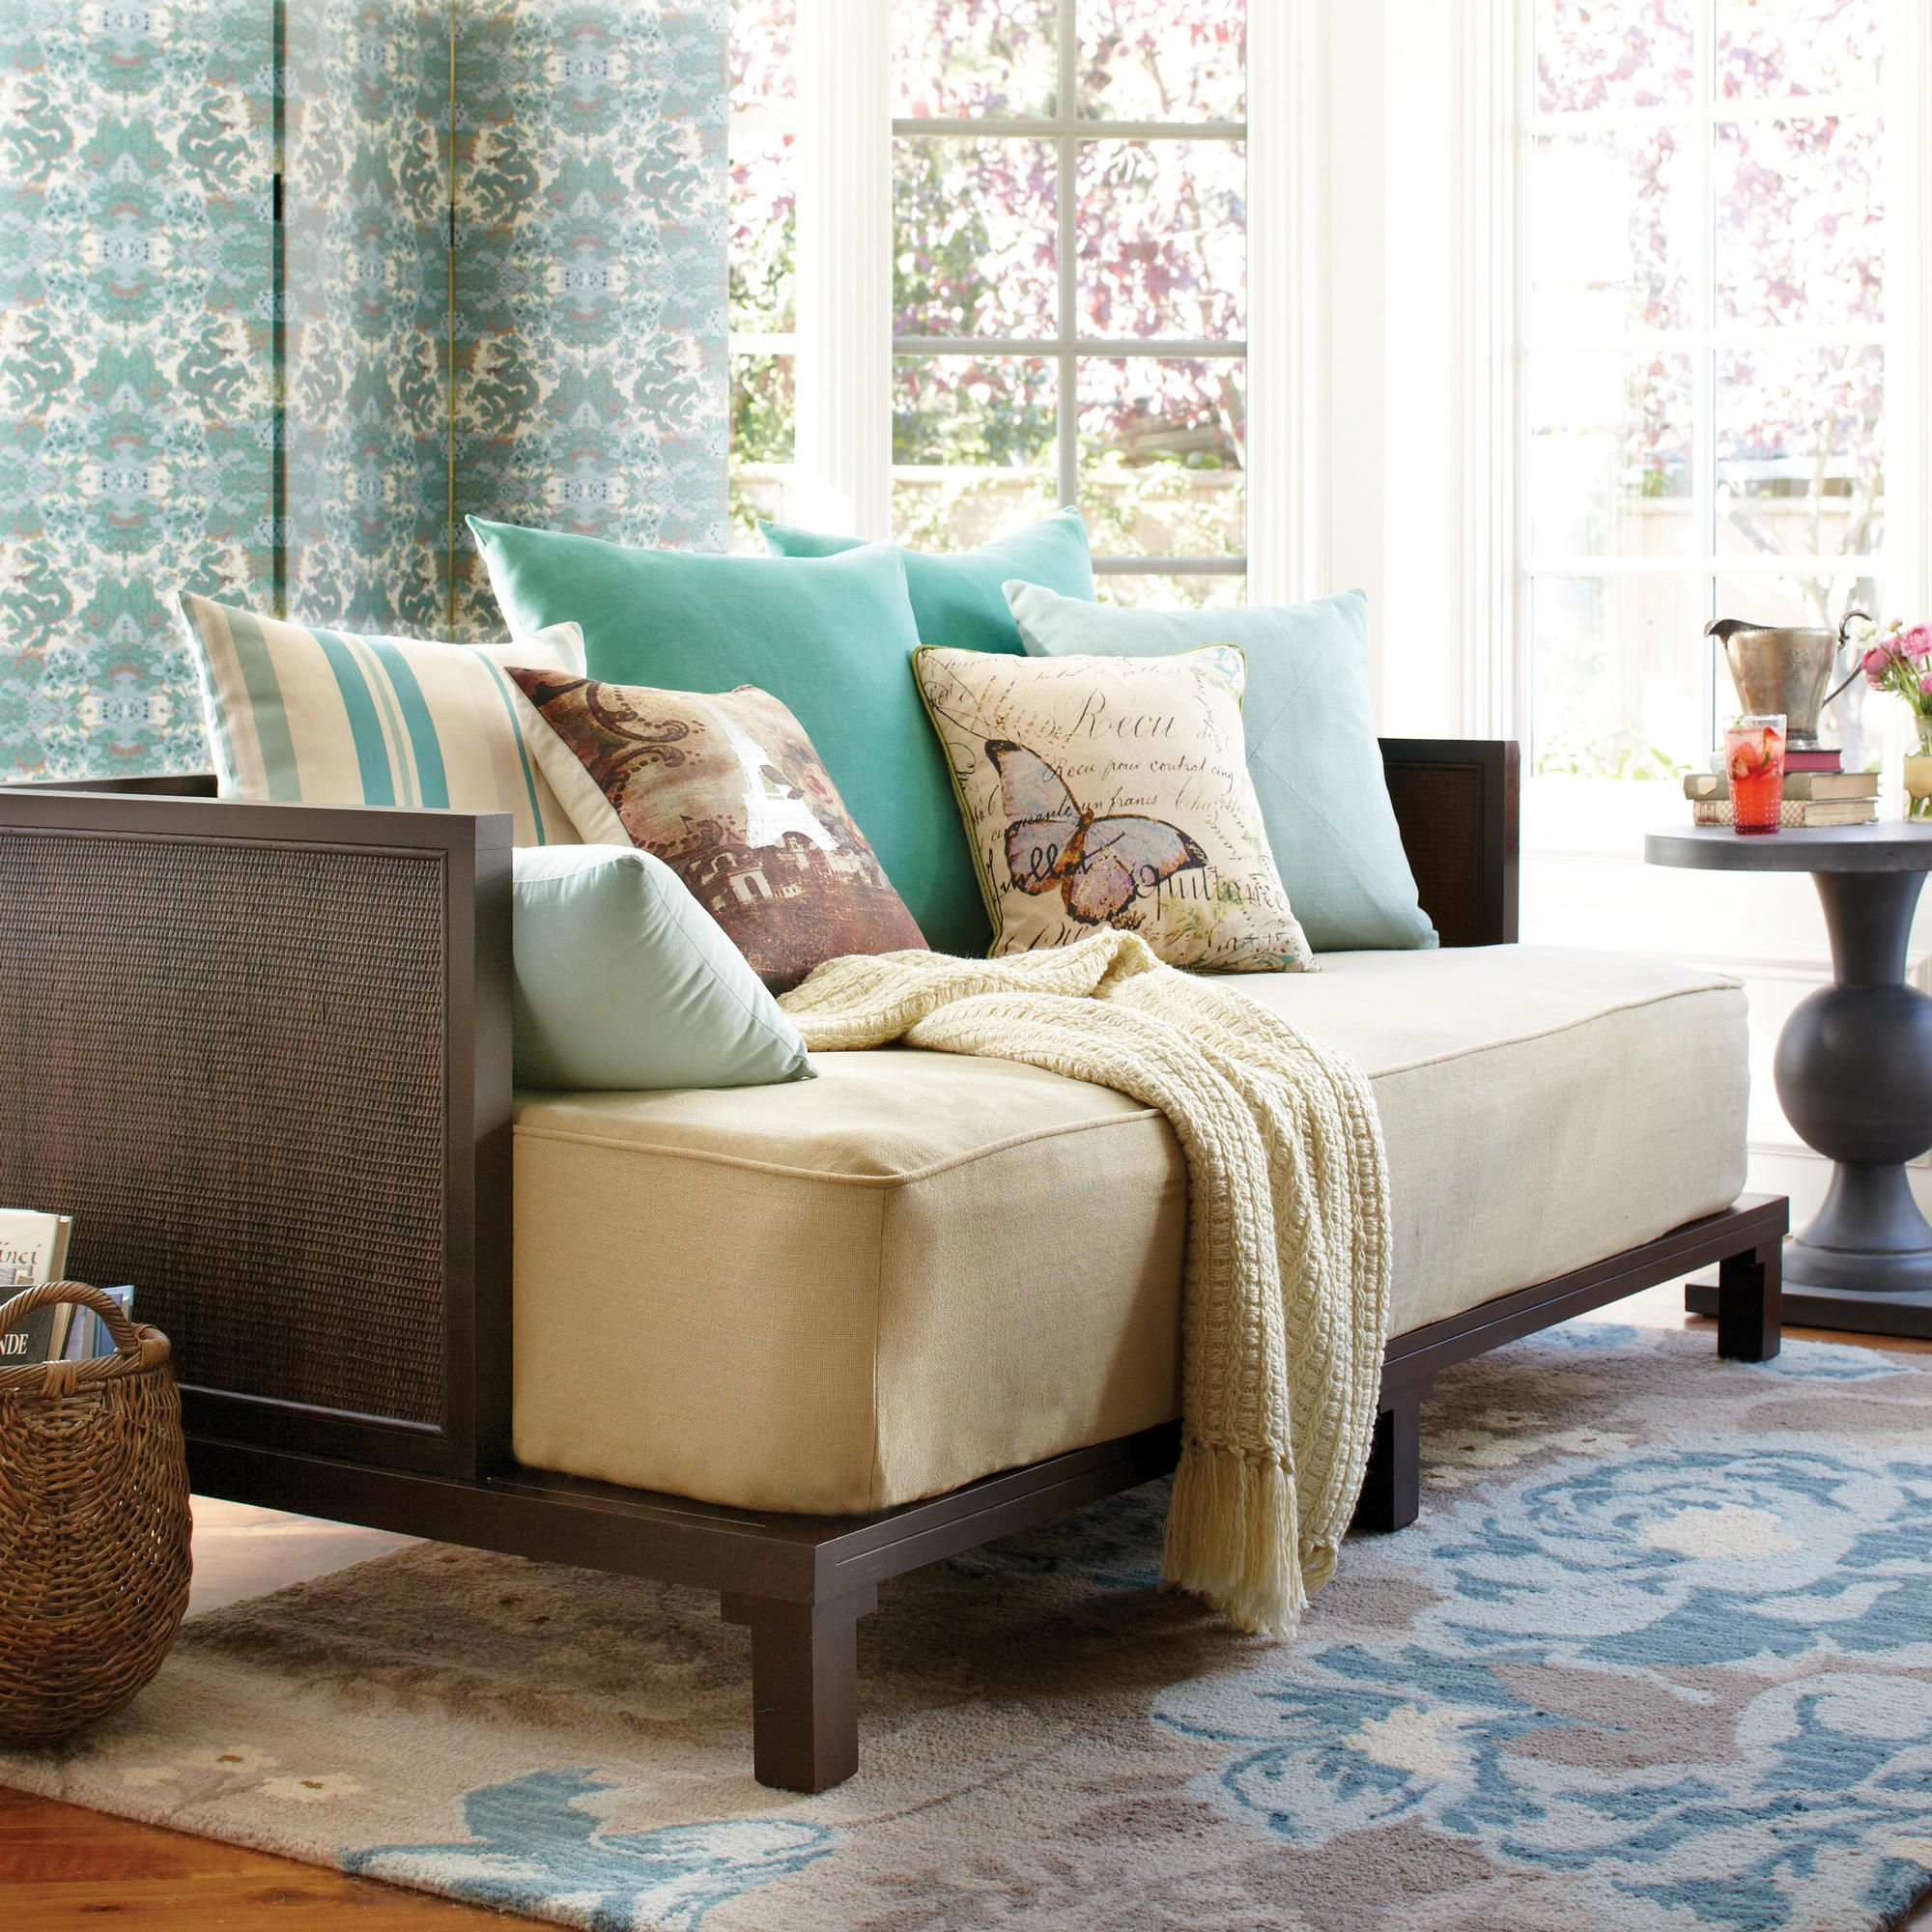 Raya Daybed | Queen beds, Daybed and Queens